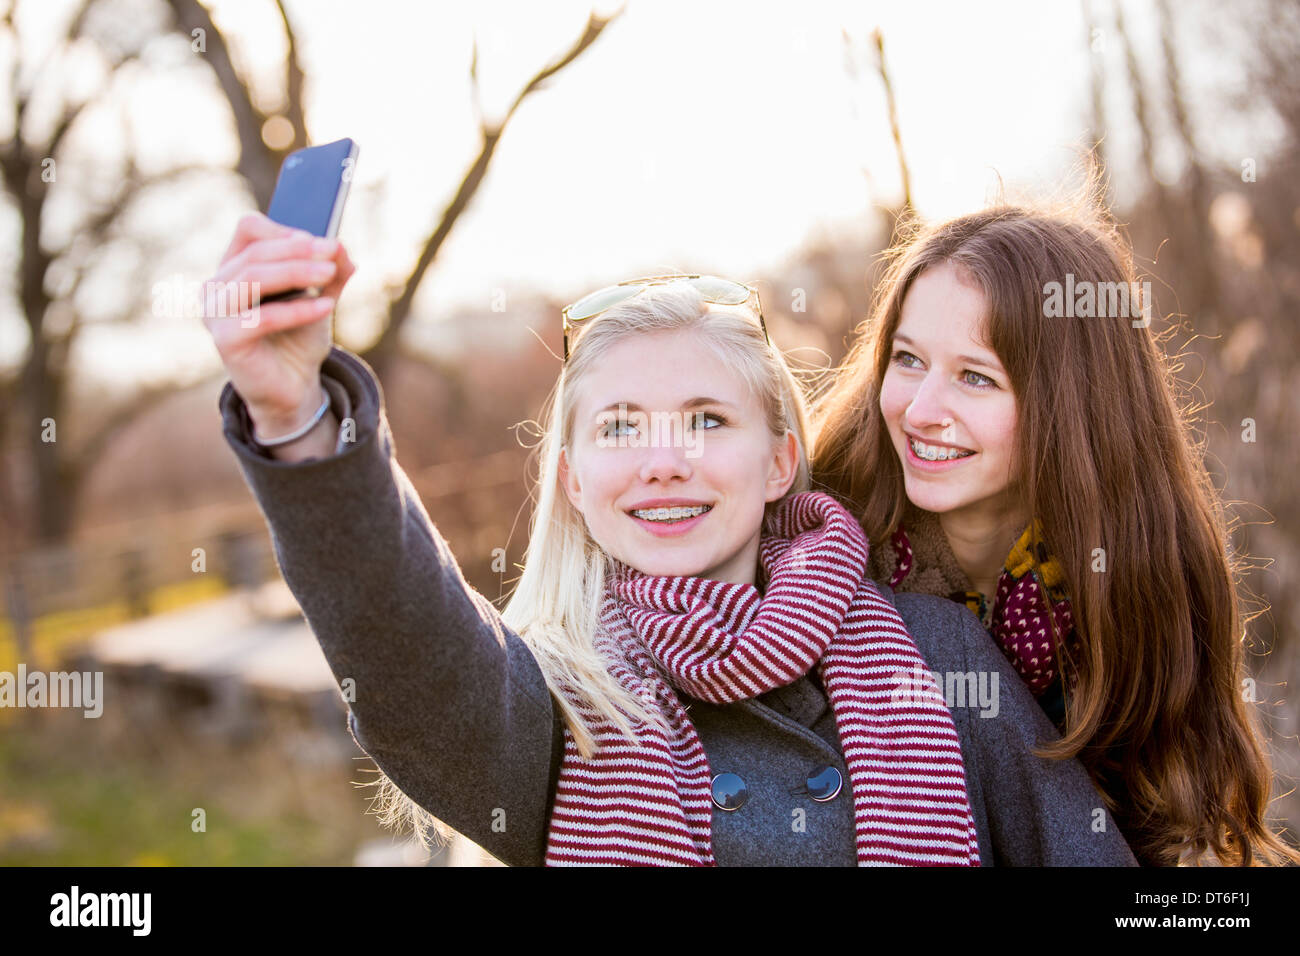 Teenage girls photographing themselves with smartphone Stock Photo